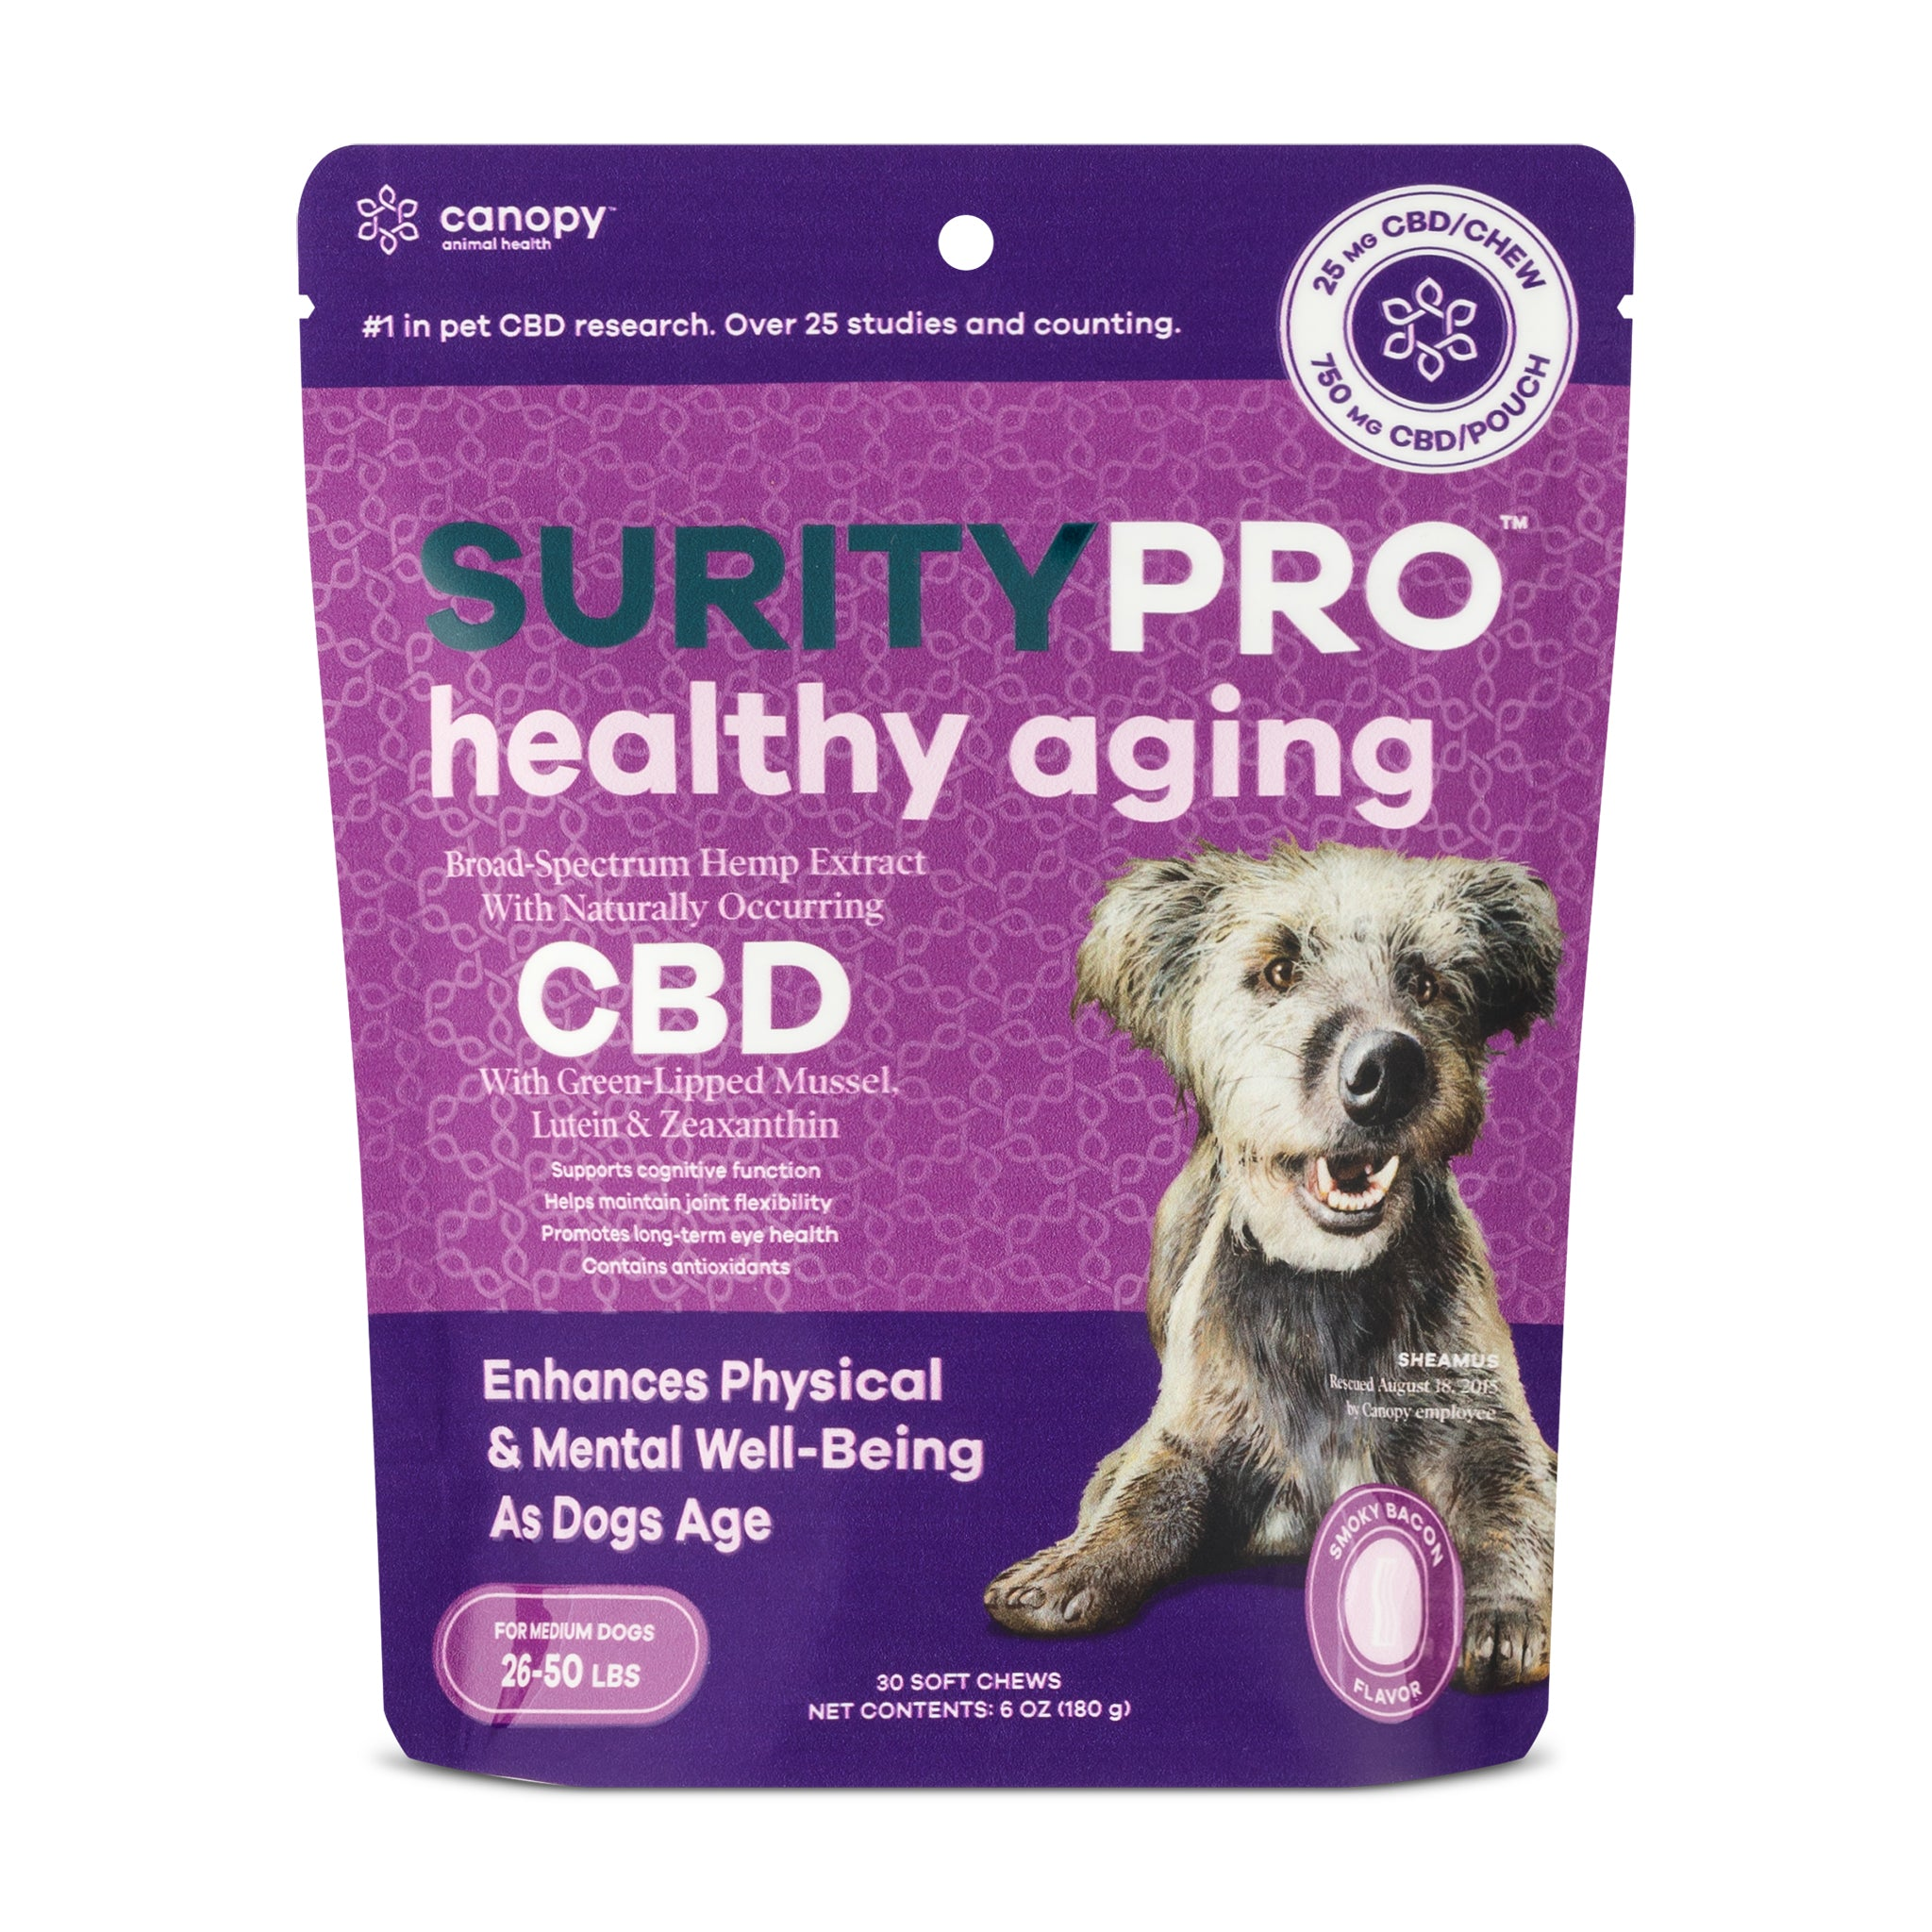 SurityPro Healthy Aging Smoky Bacon Flavor Soft Chews